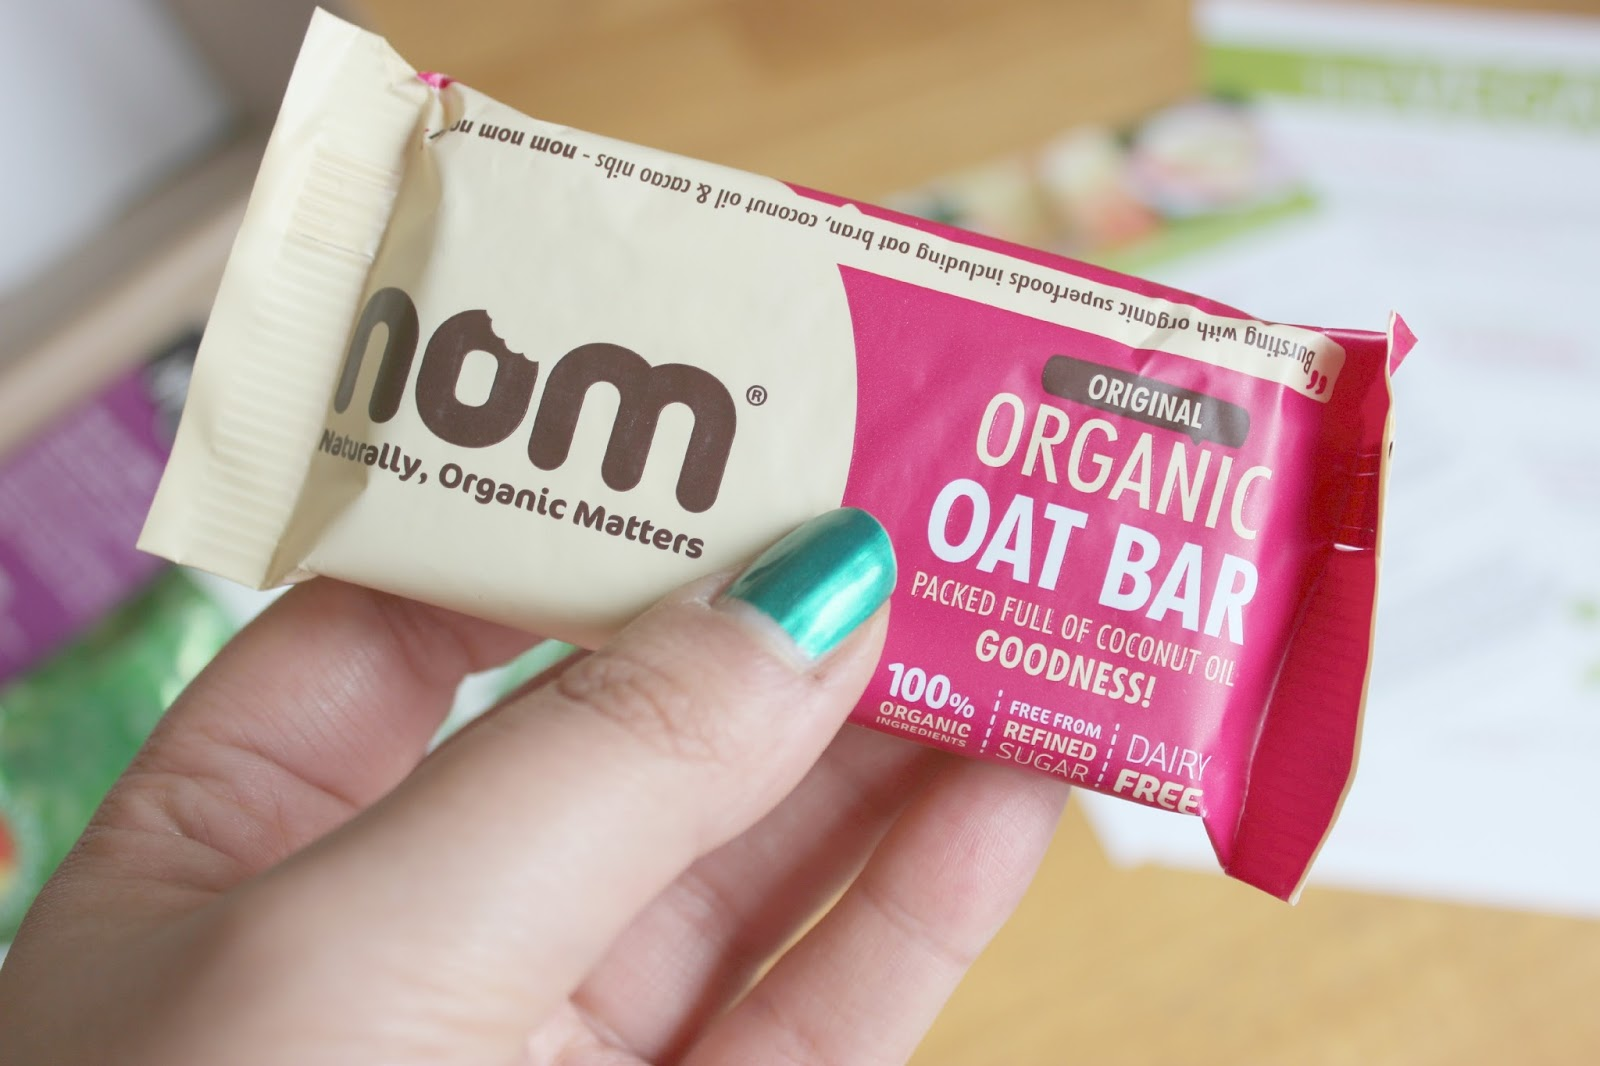 A picture of the Nom Original Organic Oat Bar